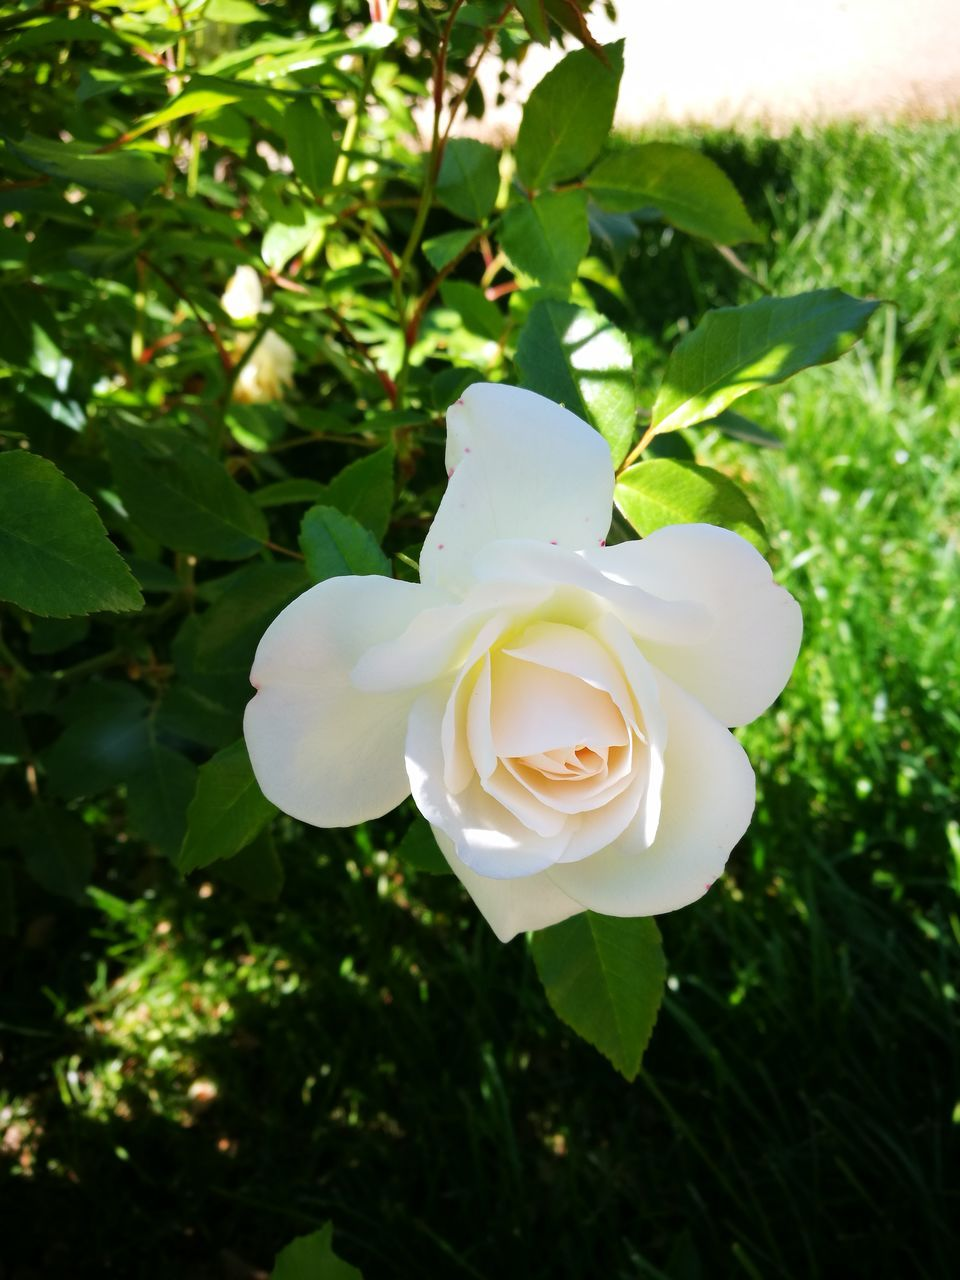 flower, petal, growth, nature, white color, beauty in nature, flower head, plant, fragility, rose - flower, no people, freshness, blooming, day, close-up, outdoors, tree